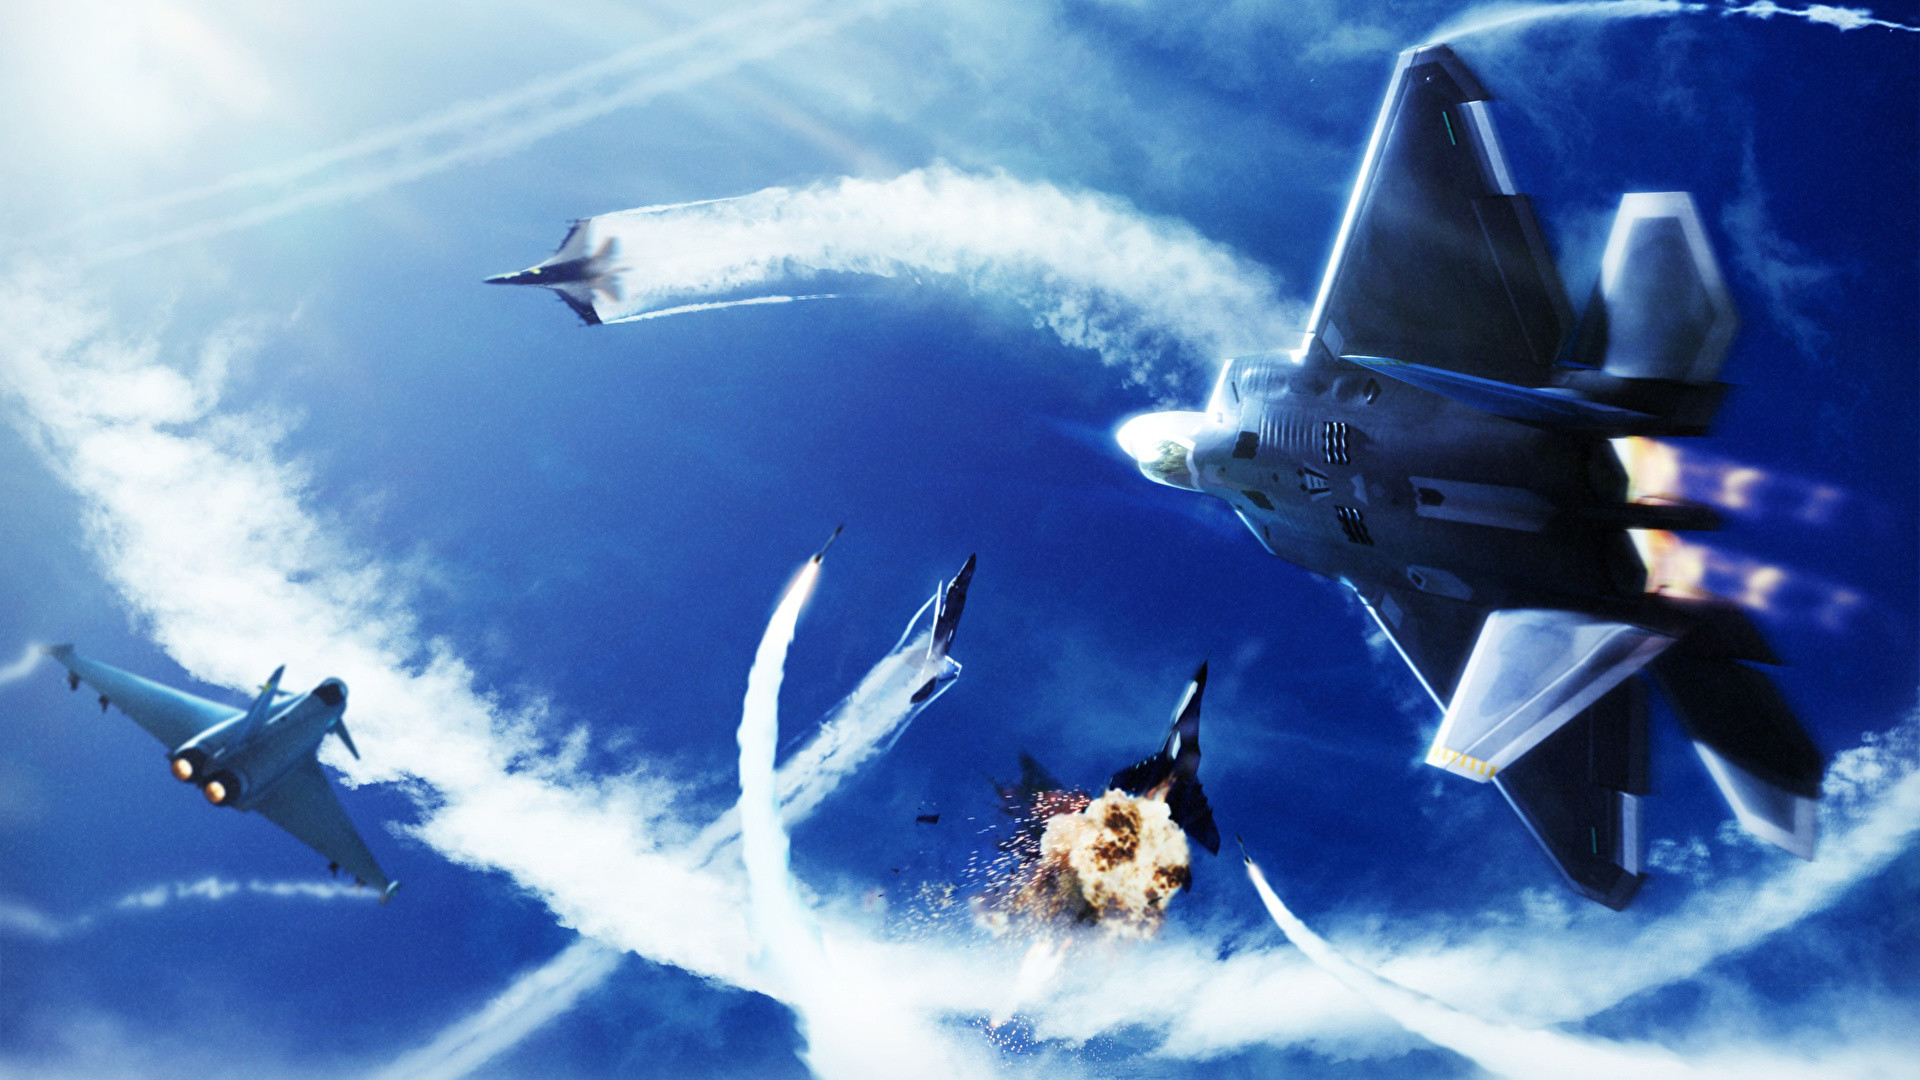 Res: 1920x1080, Wallpapers Ace Combat Fighter Airplane Airplane Explosions Games   Fighter aircraft